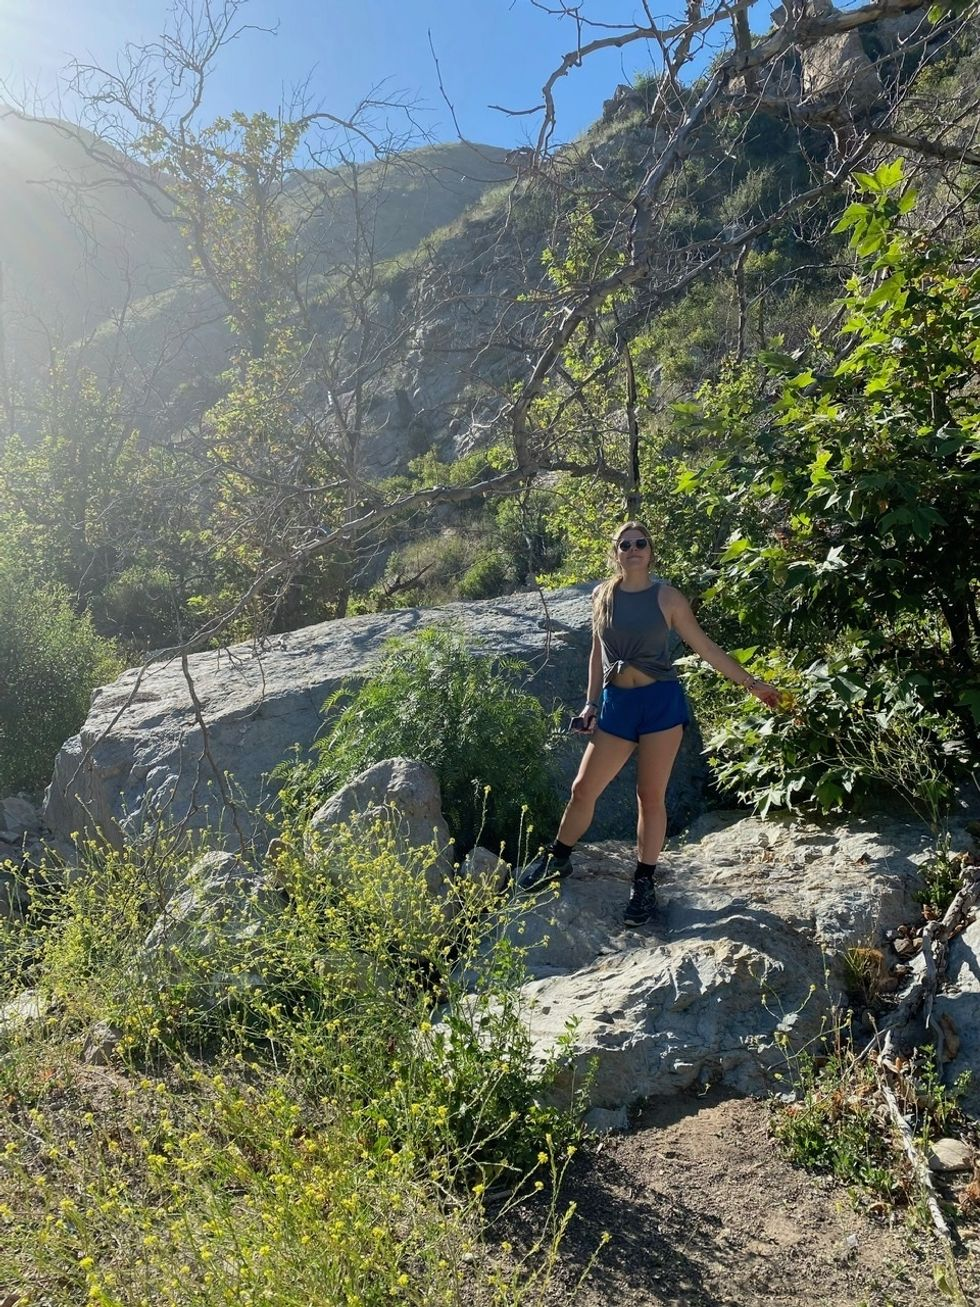 Caileigh on a hike in Malibu